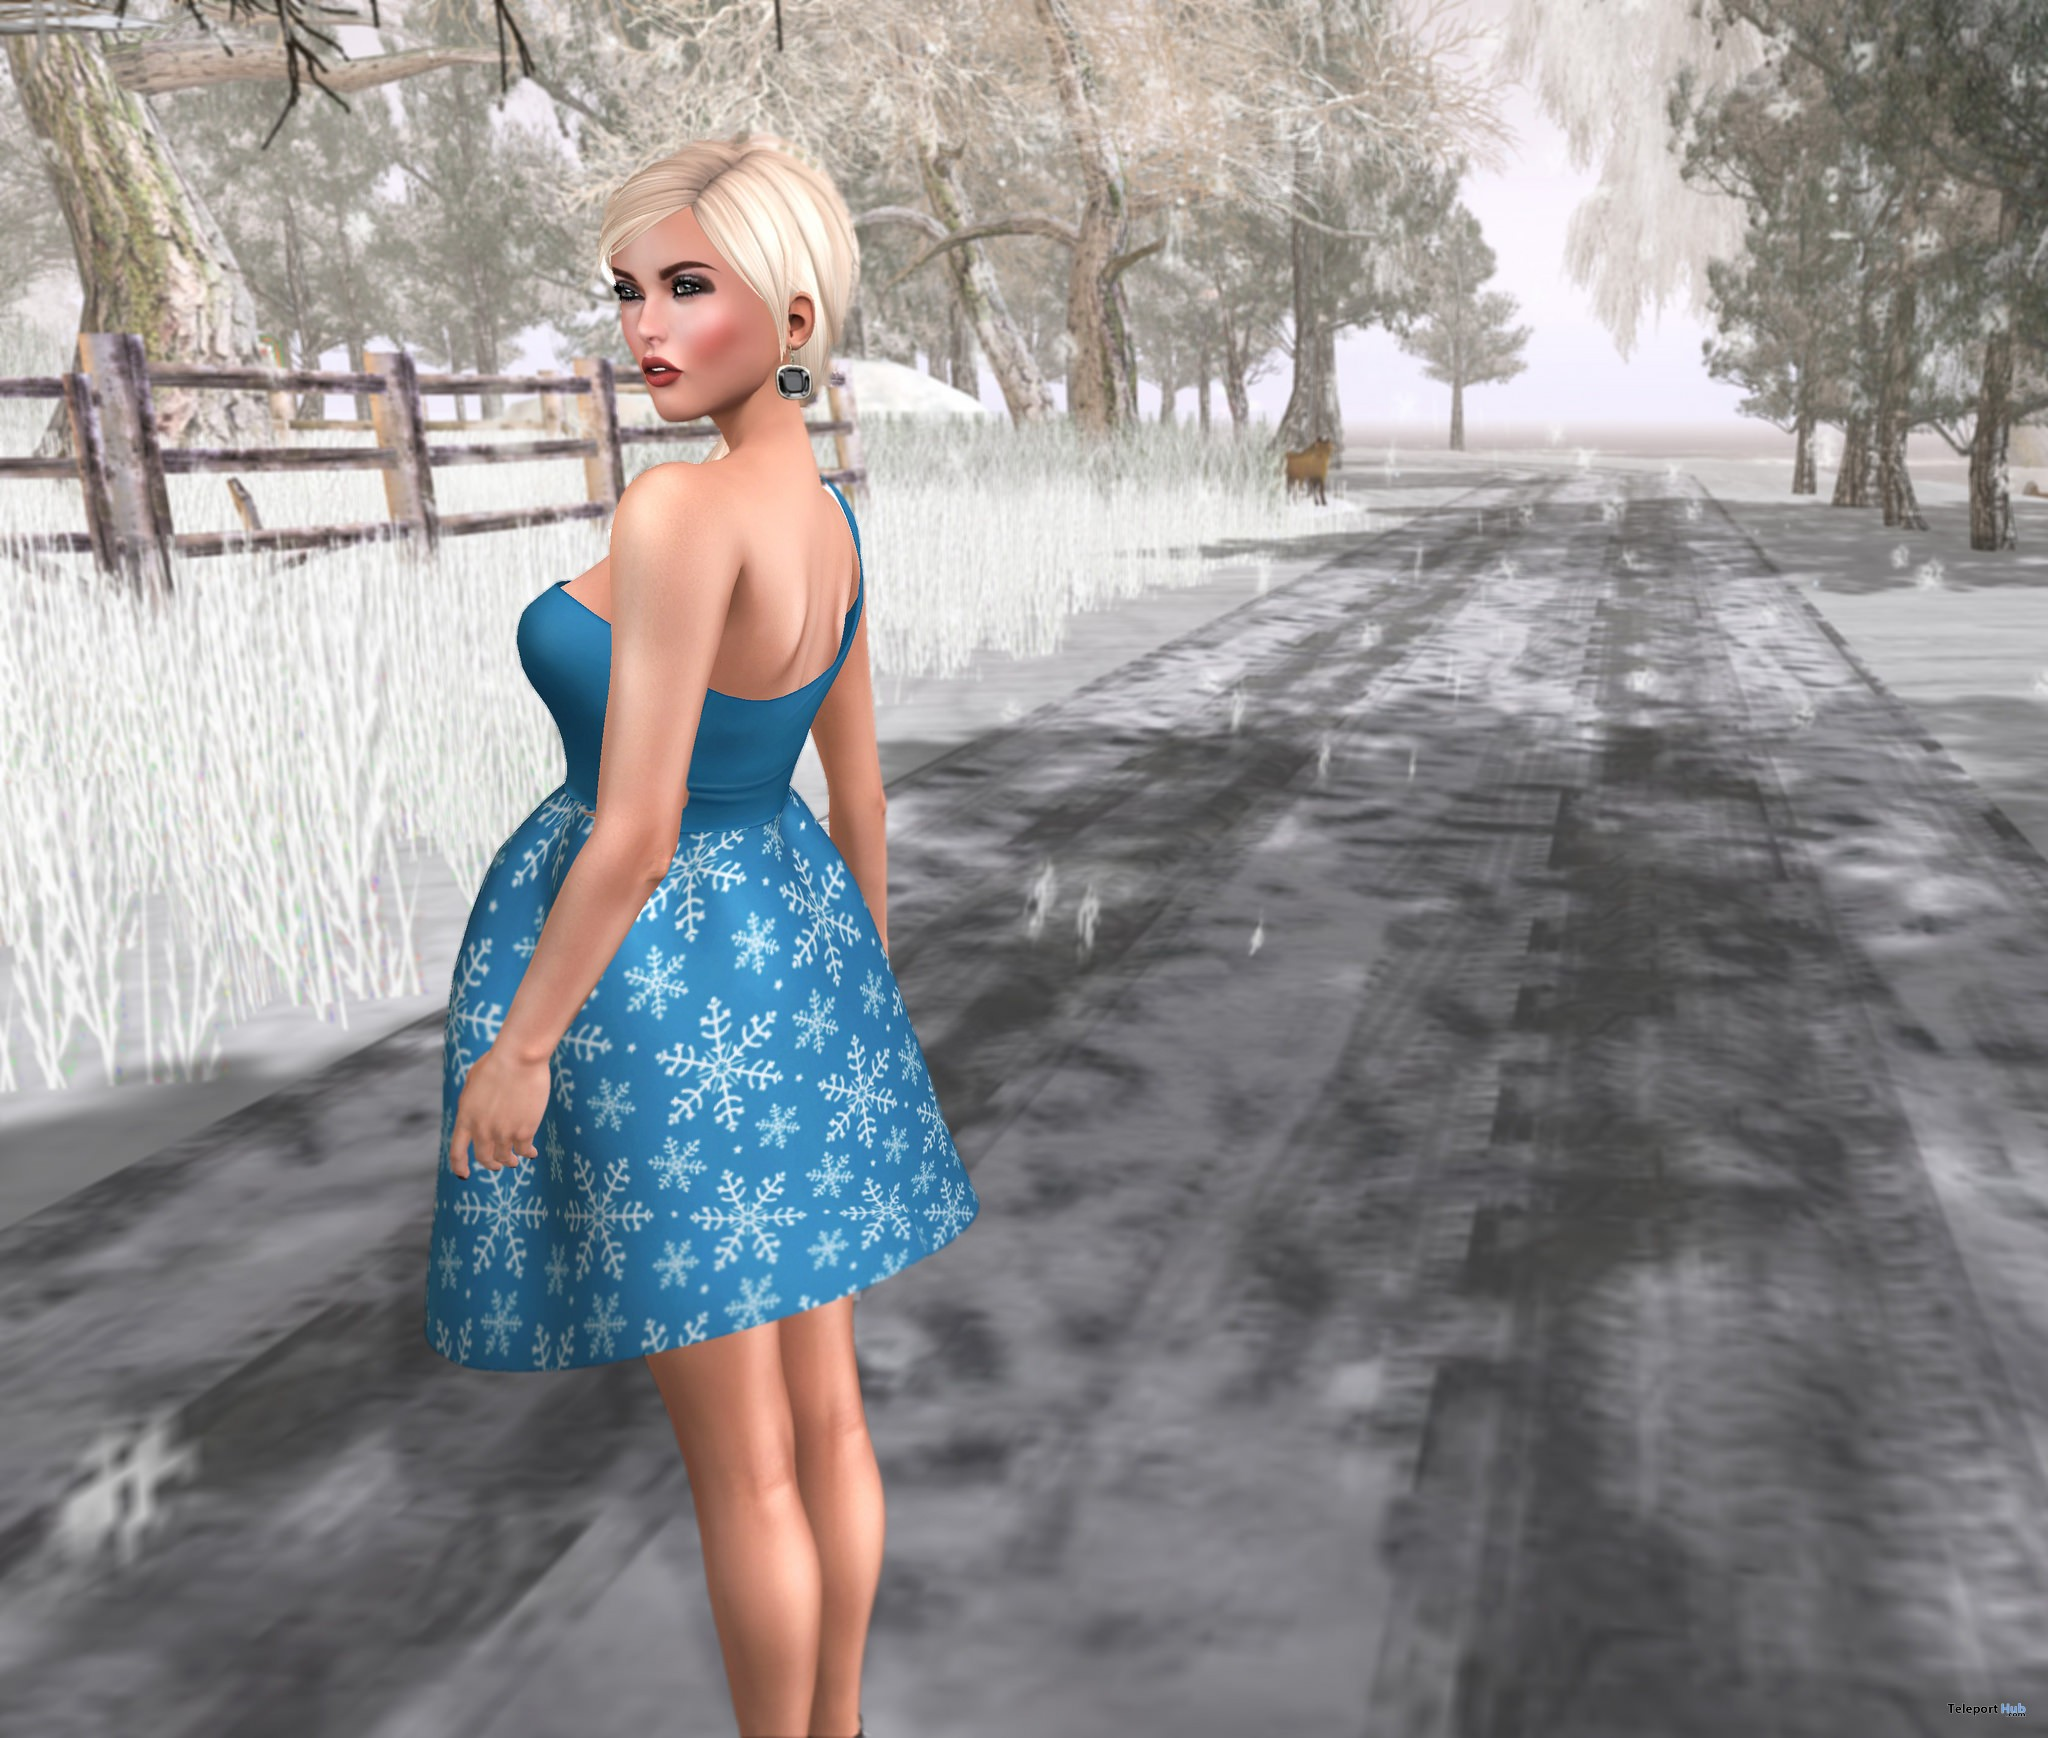 Snowflakes Shoulder Dress December 2016 Group Gift by #bubbles- Teleport Hub - teleporthub.com